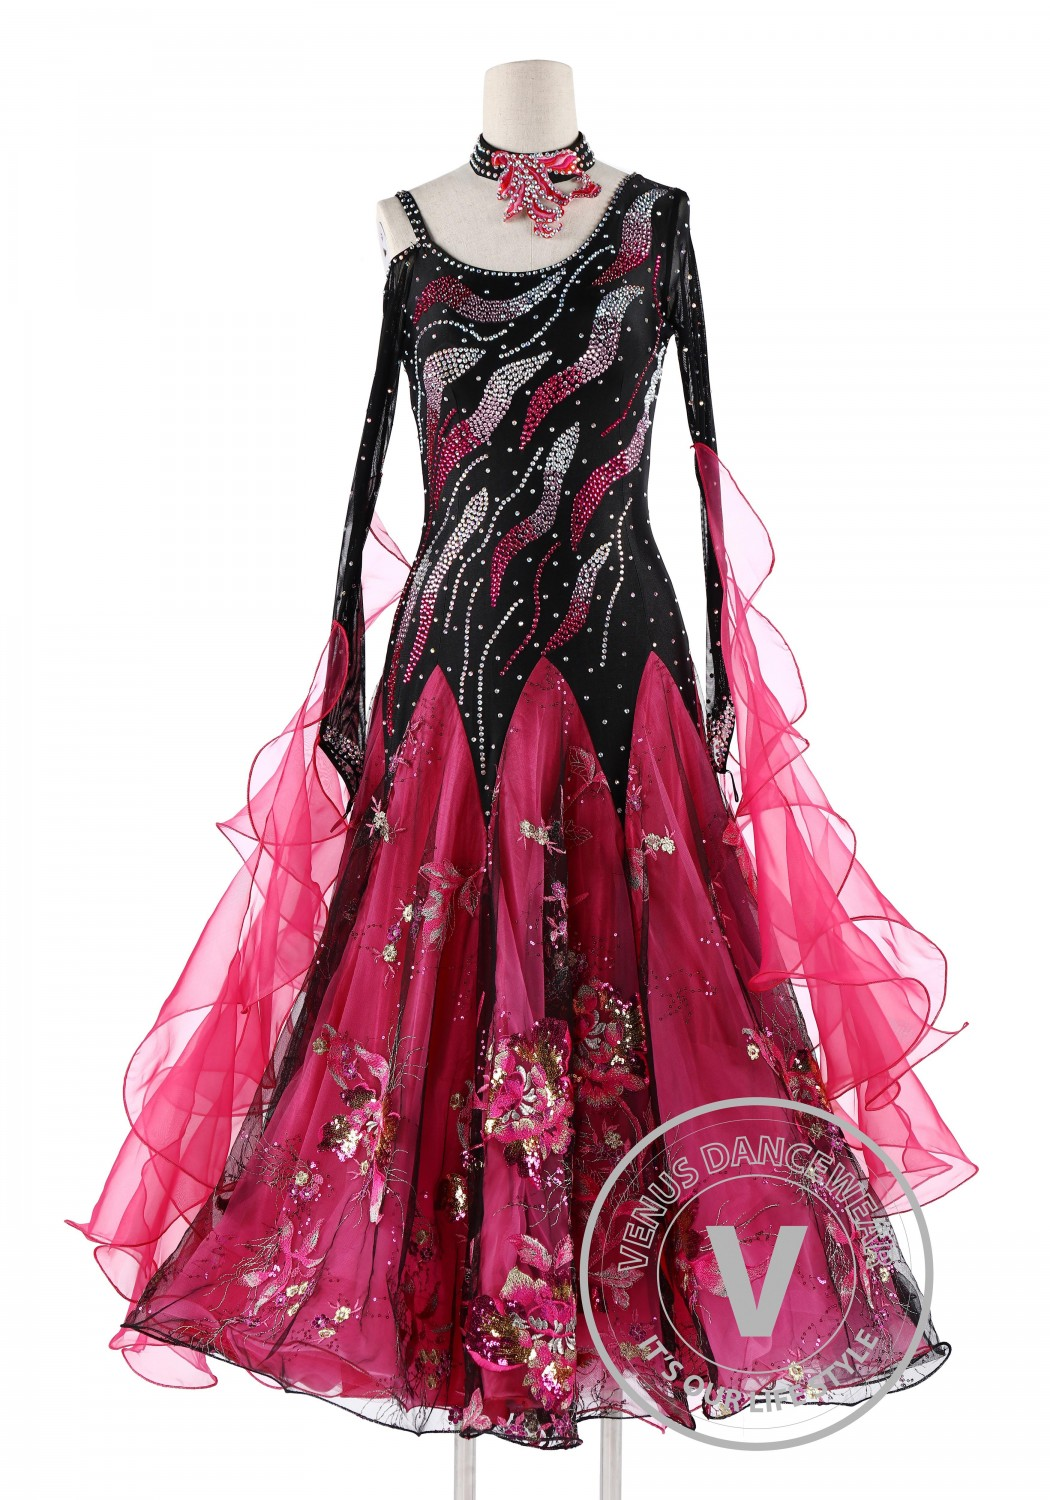 Black and Rose Standard Competition Ballroom Dance Dress